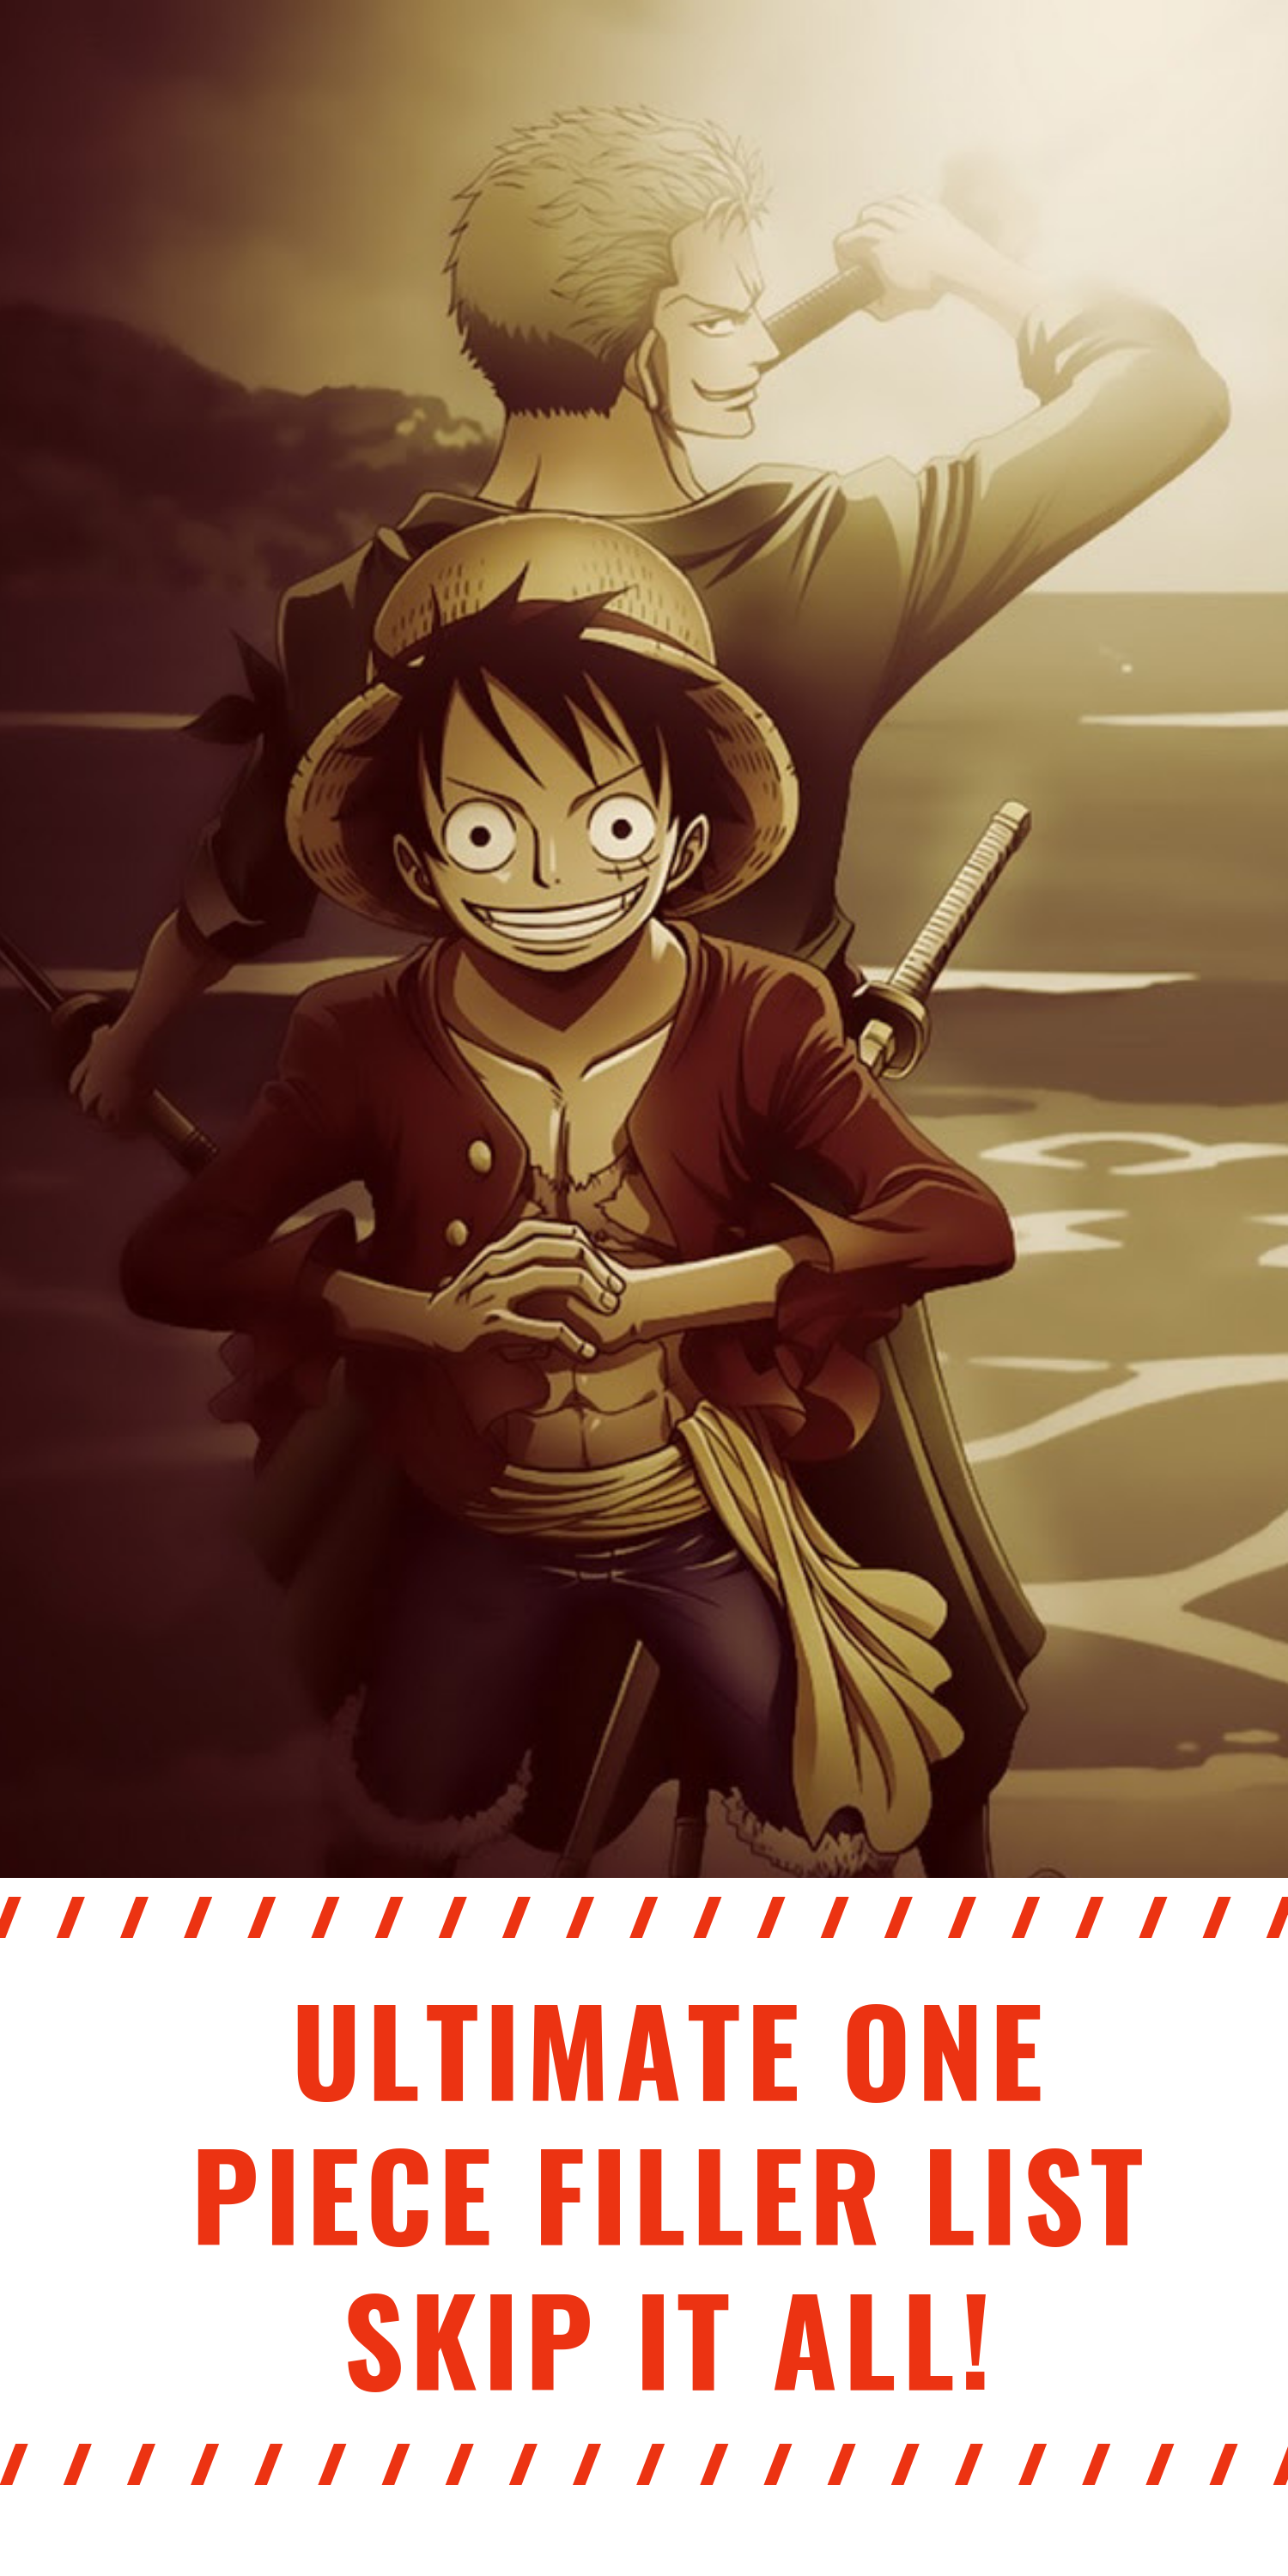 Ultimate One Piece Filler List | Anime dragon ball, One ...